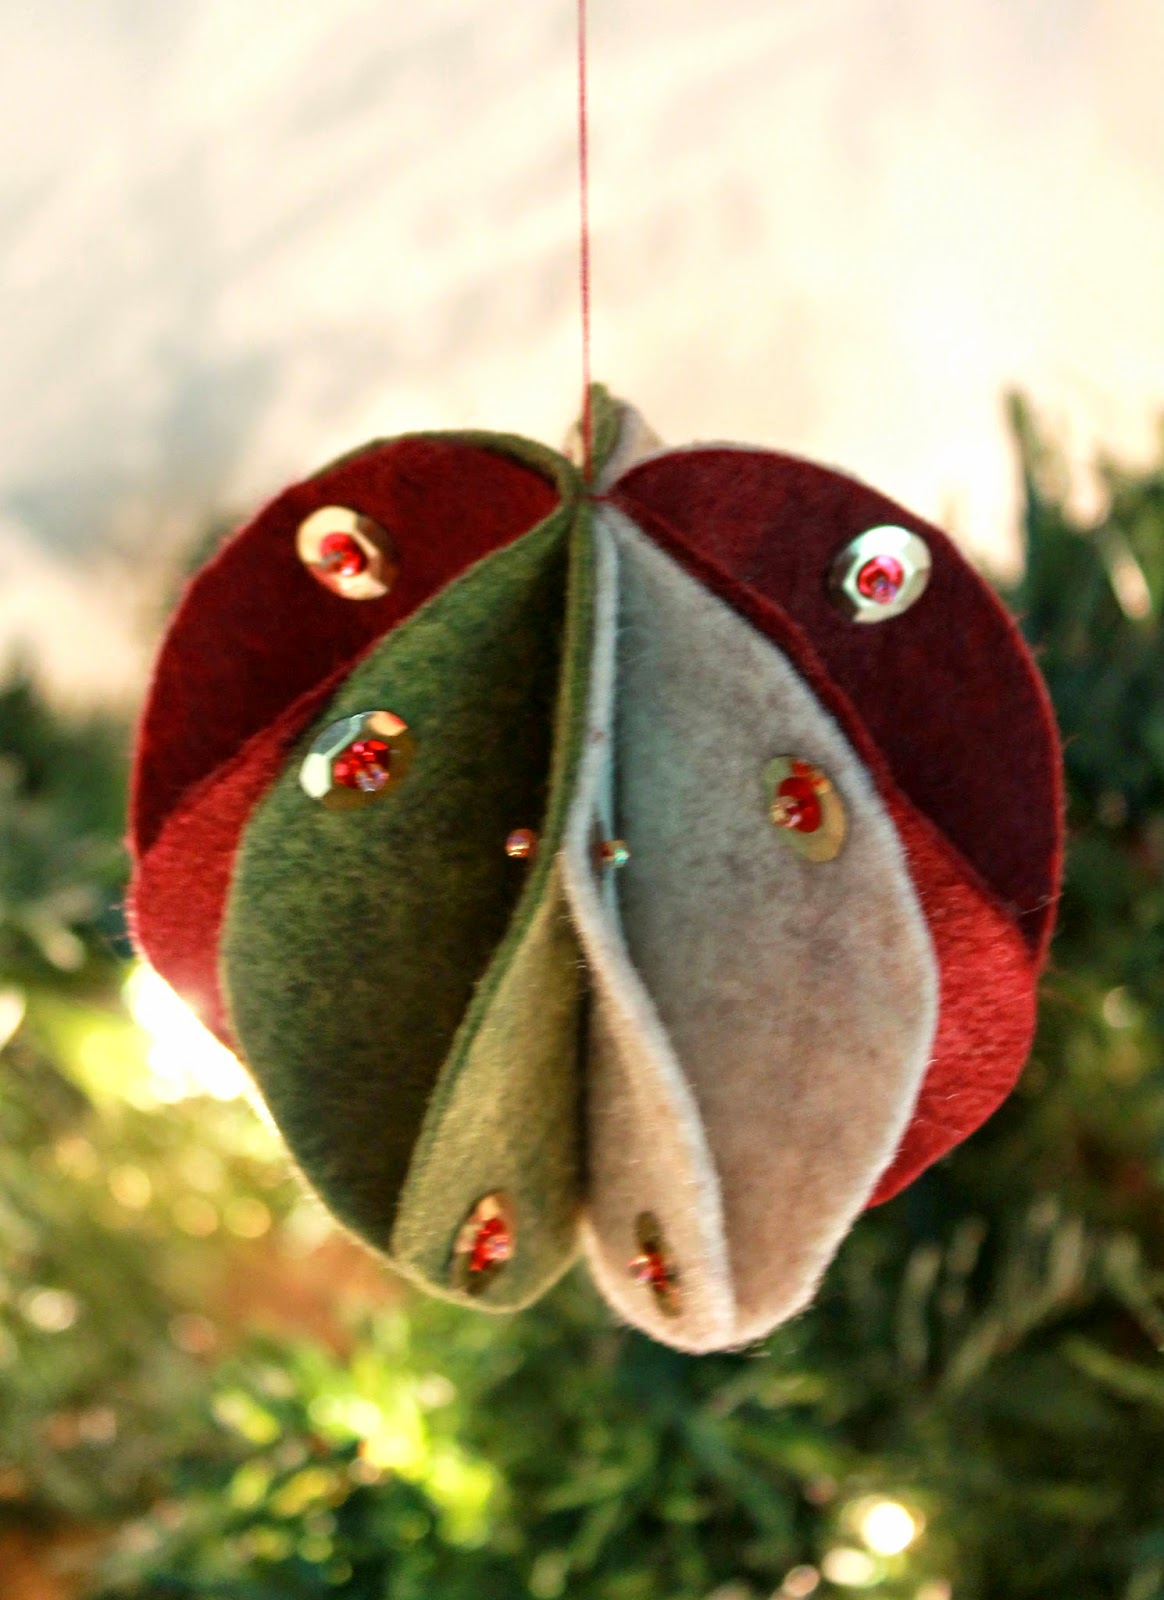 Felt Bauble Tutorial: Step by step directions to create a handmade felt sphere with thread or with hot glue. | The Inspired Wren